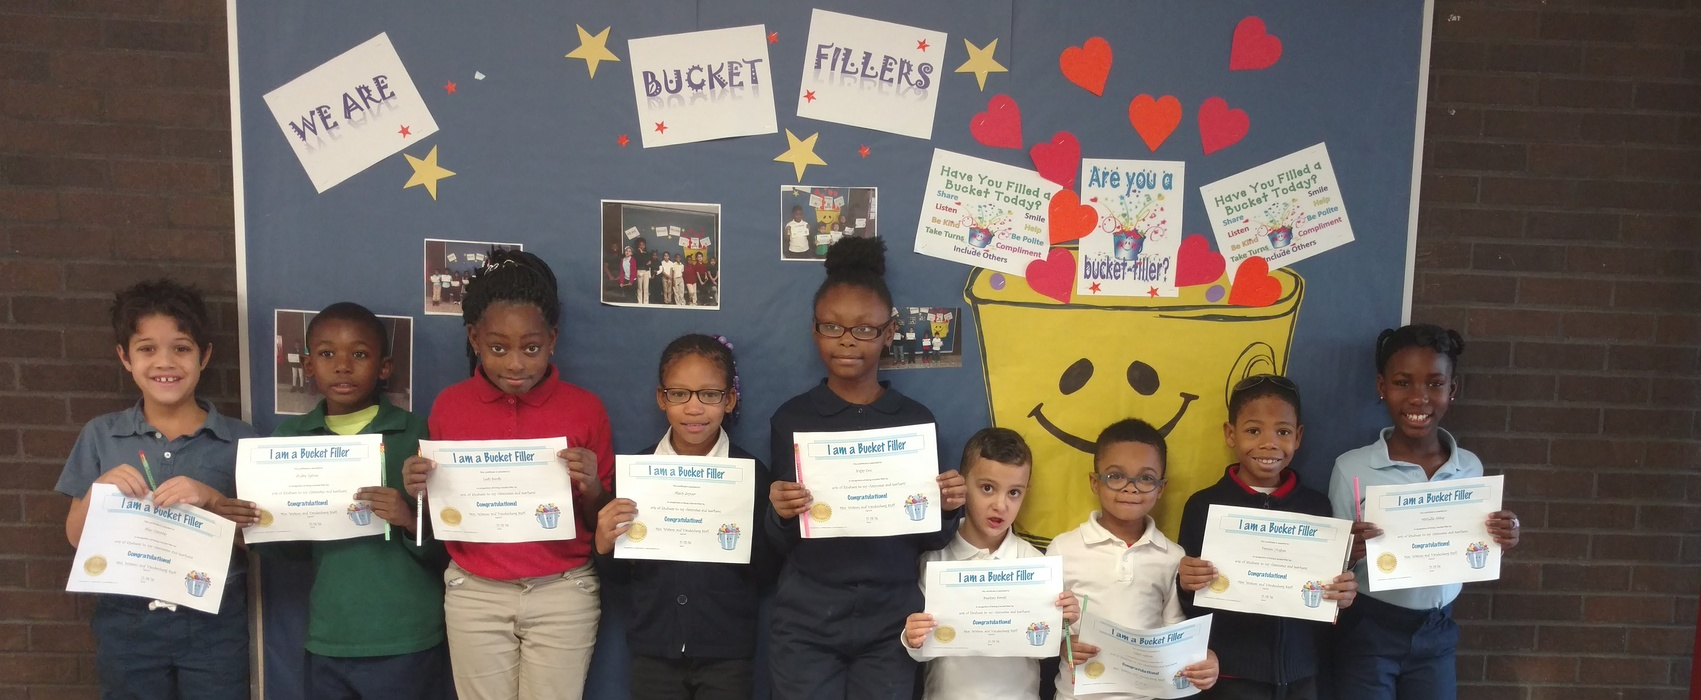 A Group of students that were Bucket Fillers